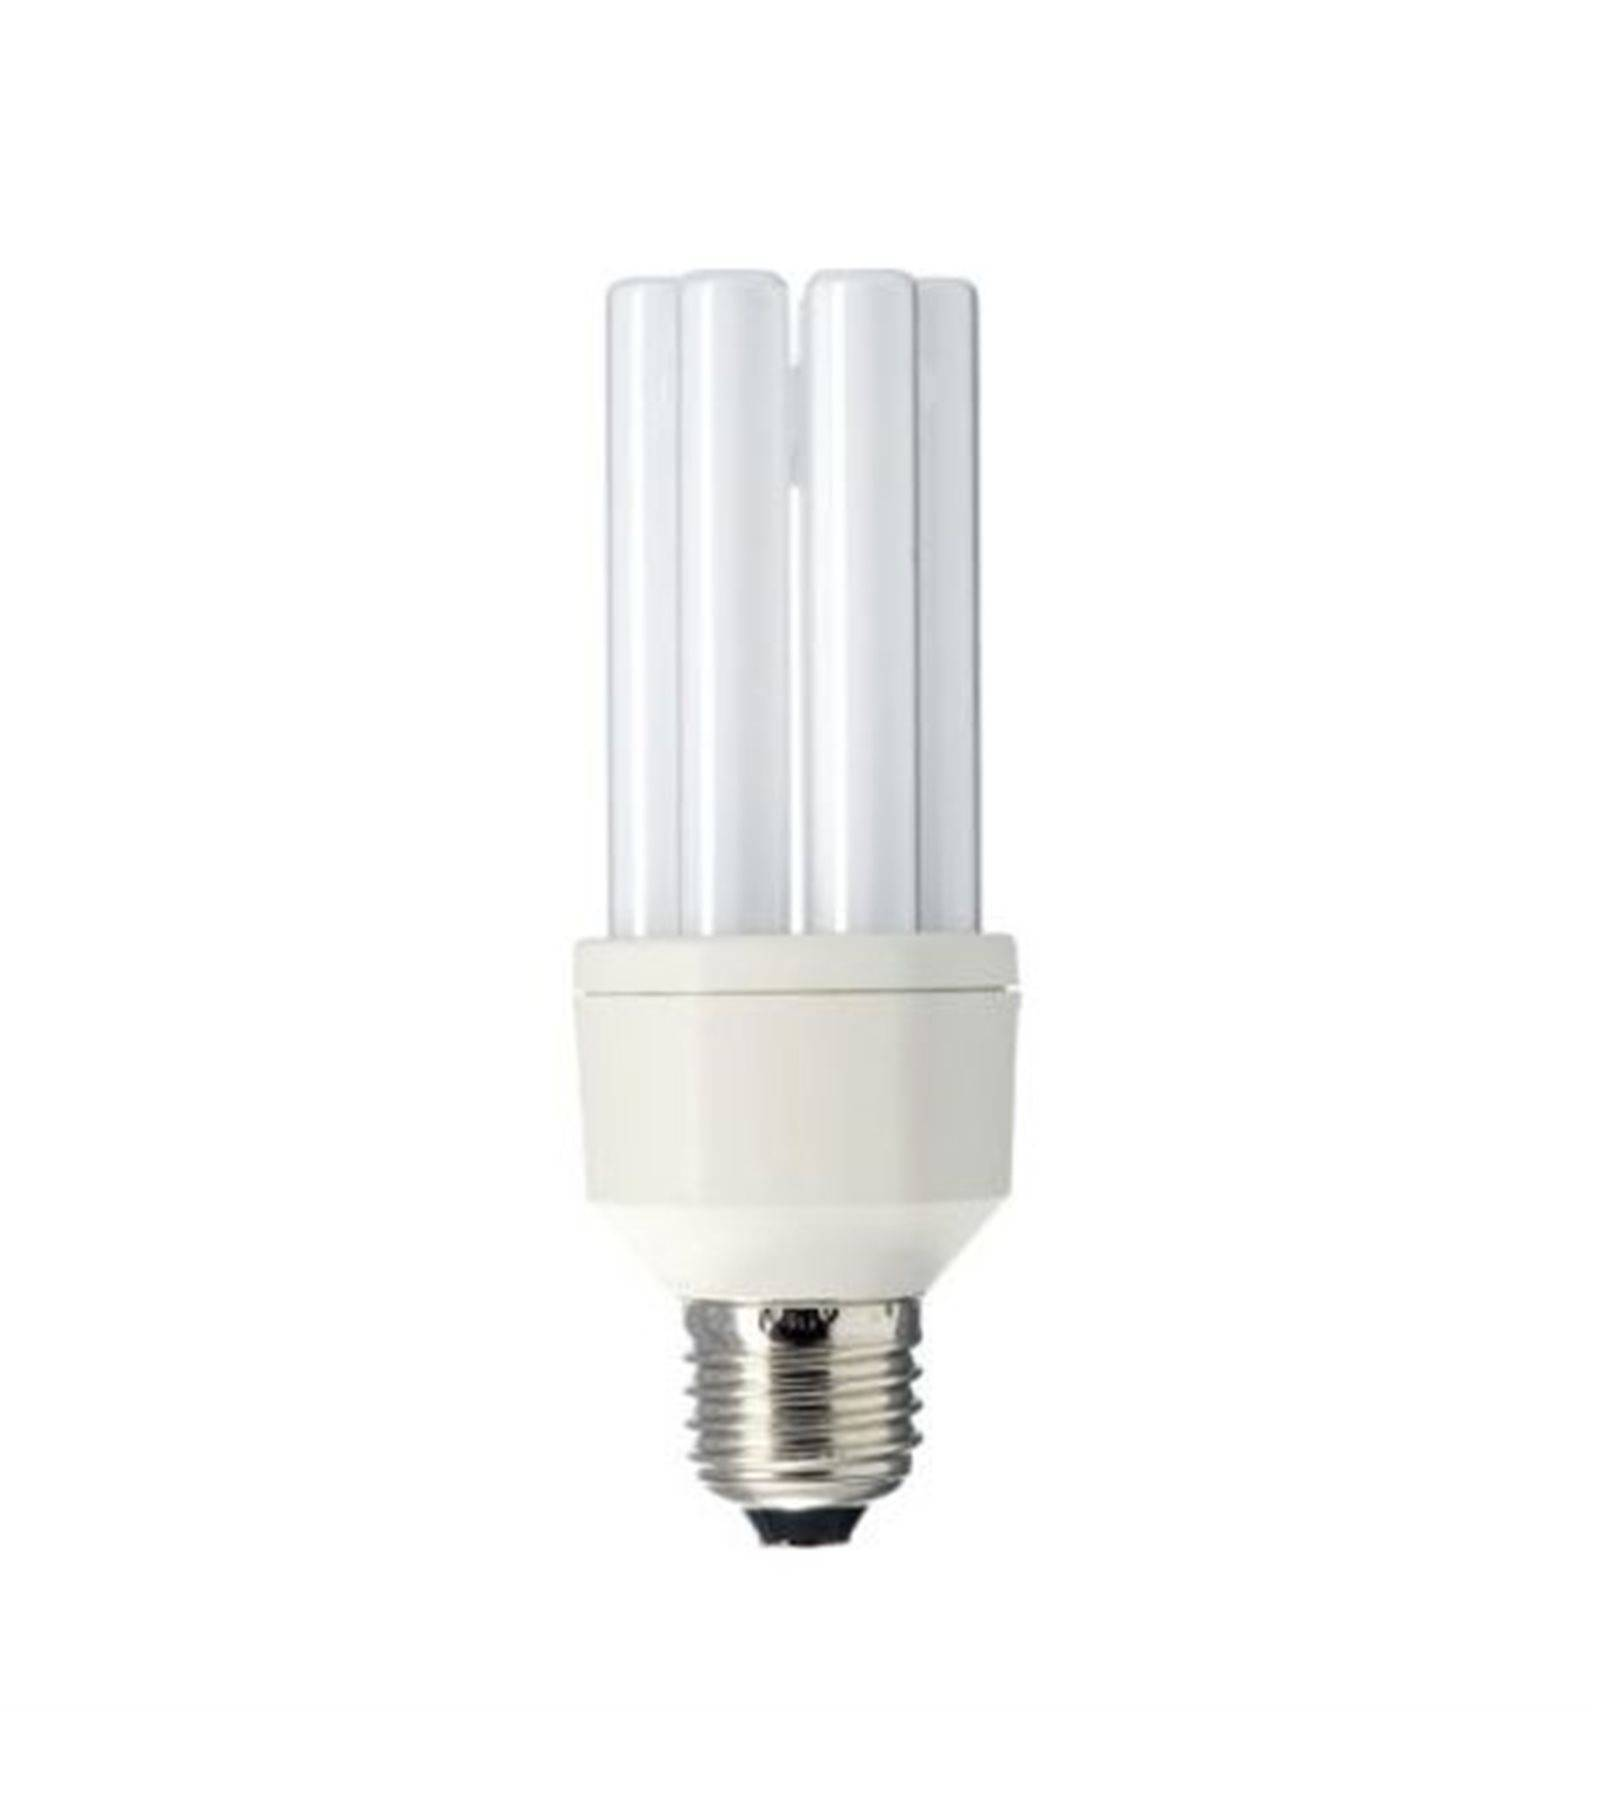 Philips Ampoule Fluocompacte Basse Consommation E27 Master Stairway 20W 1230Lm équiv 90W Blanc chaud PHILIPS - 877694